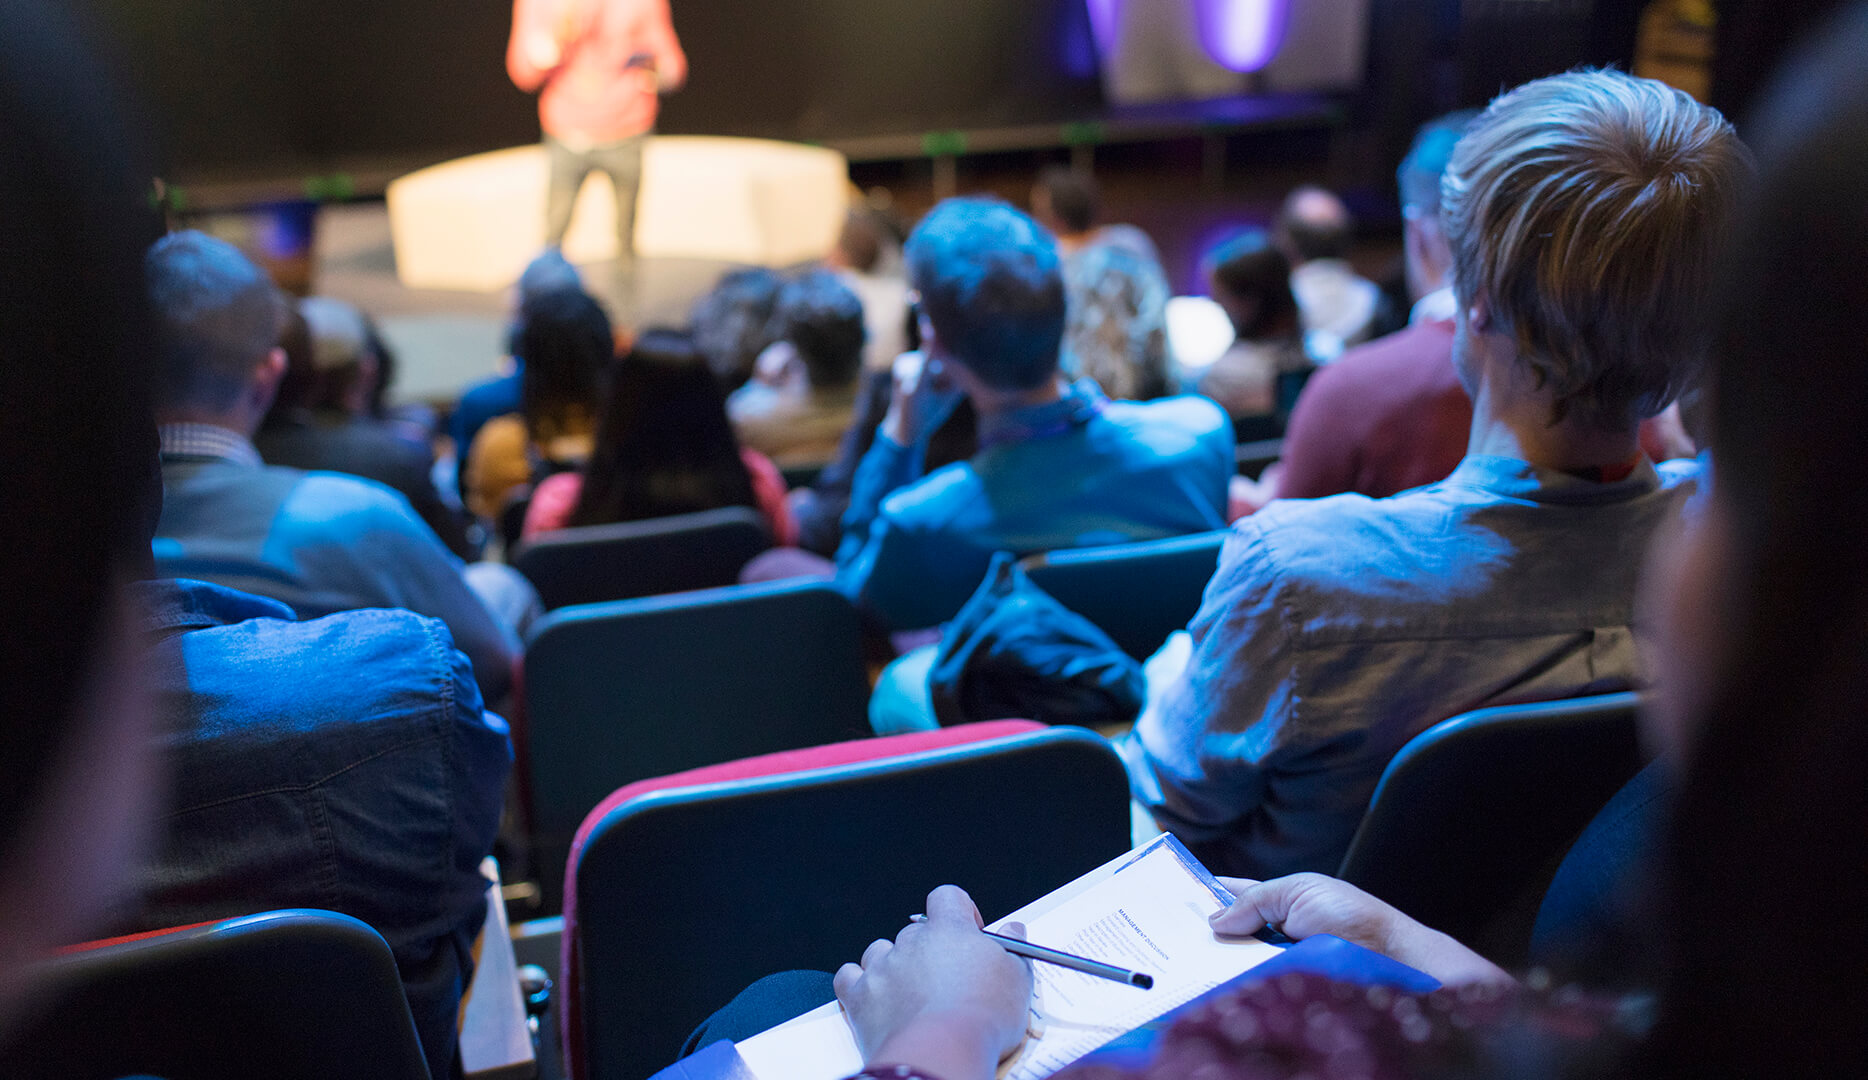 The Best Project Management Conferences to Attend in 2019